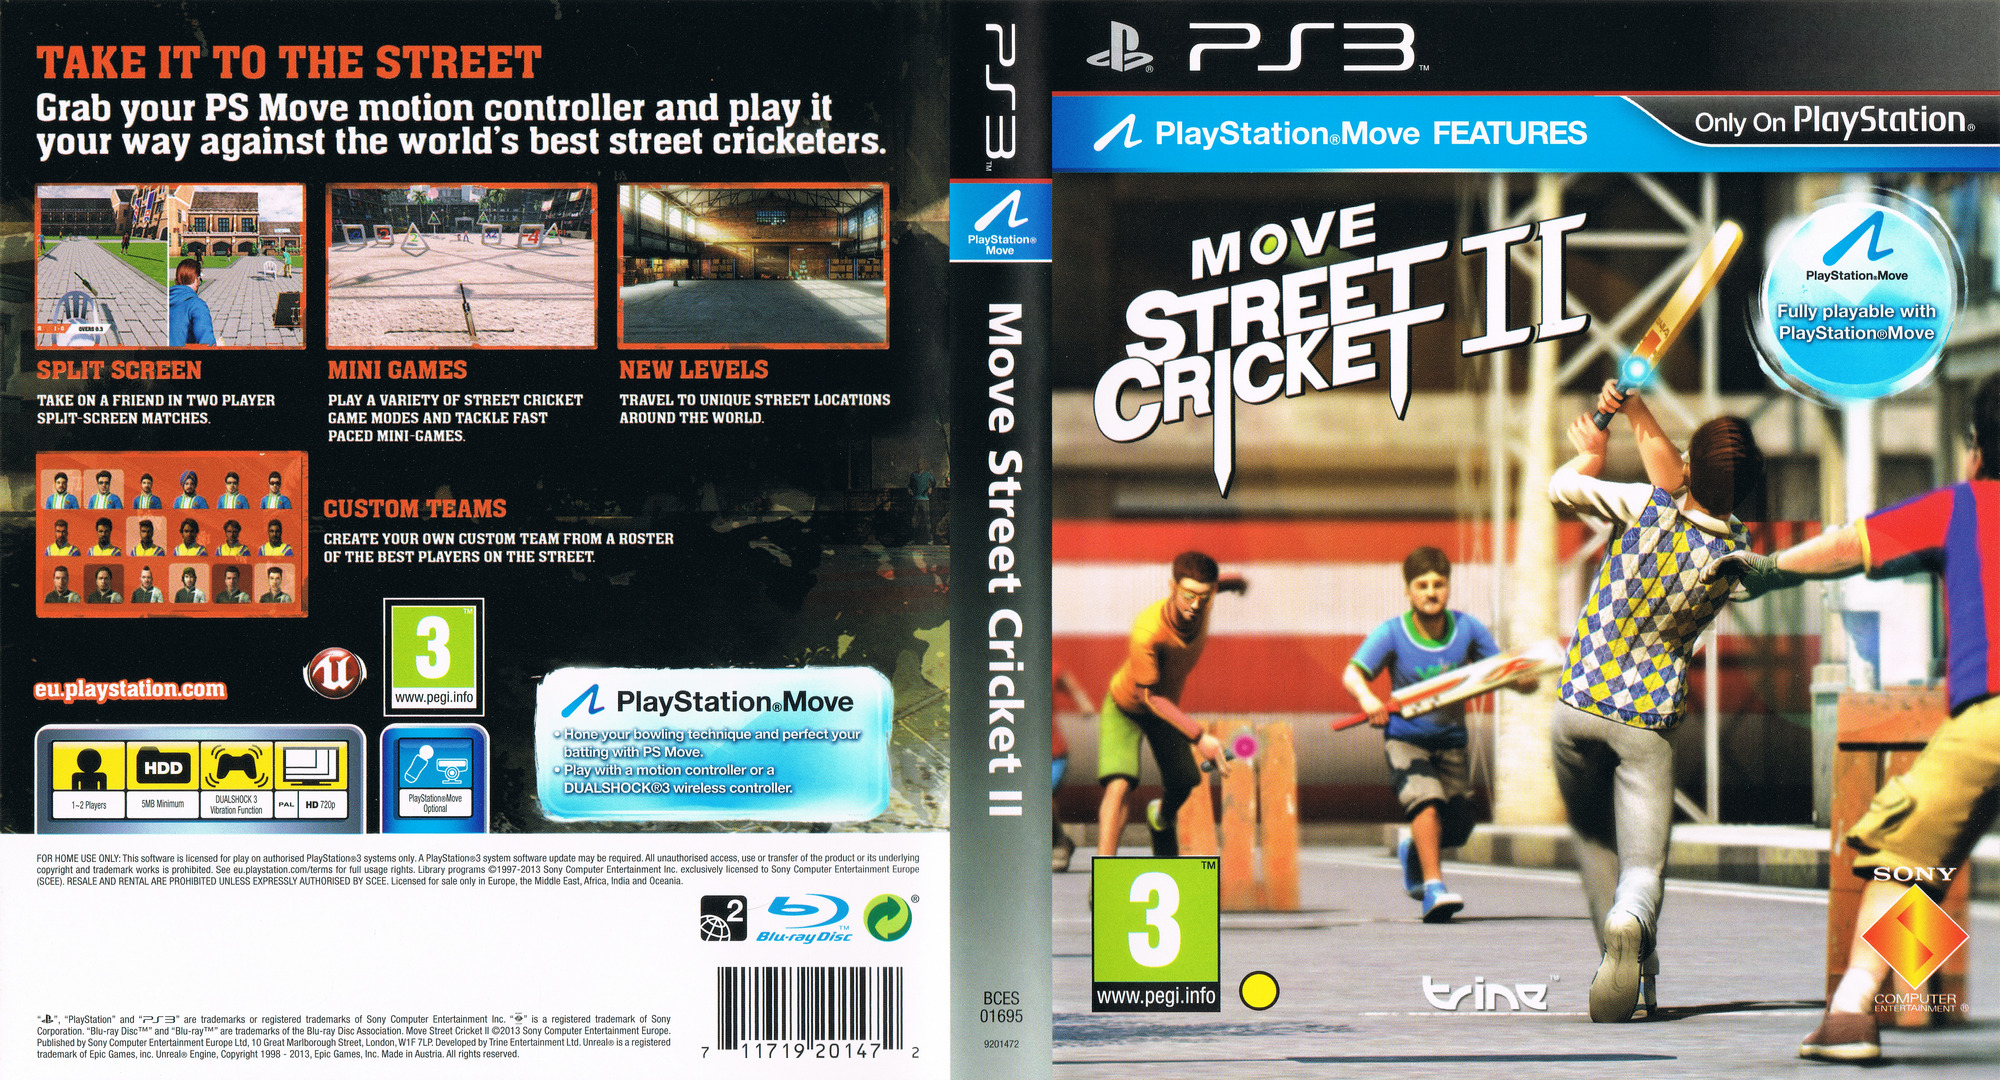 Move Street Cricket II PS3 coverfullHQ (BCES01695)